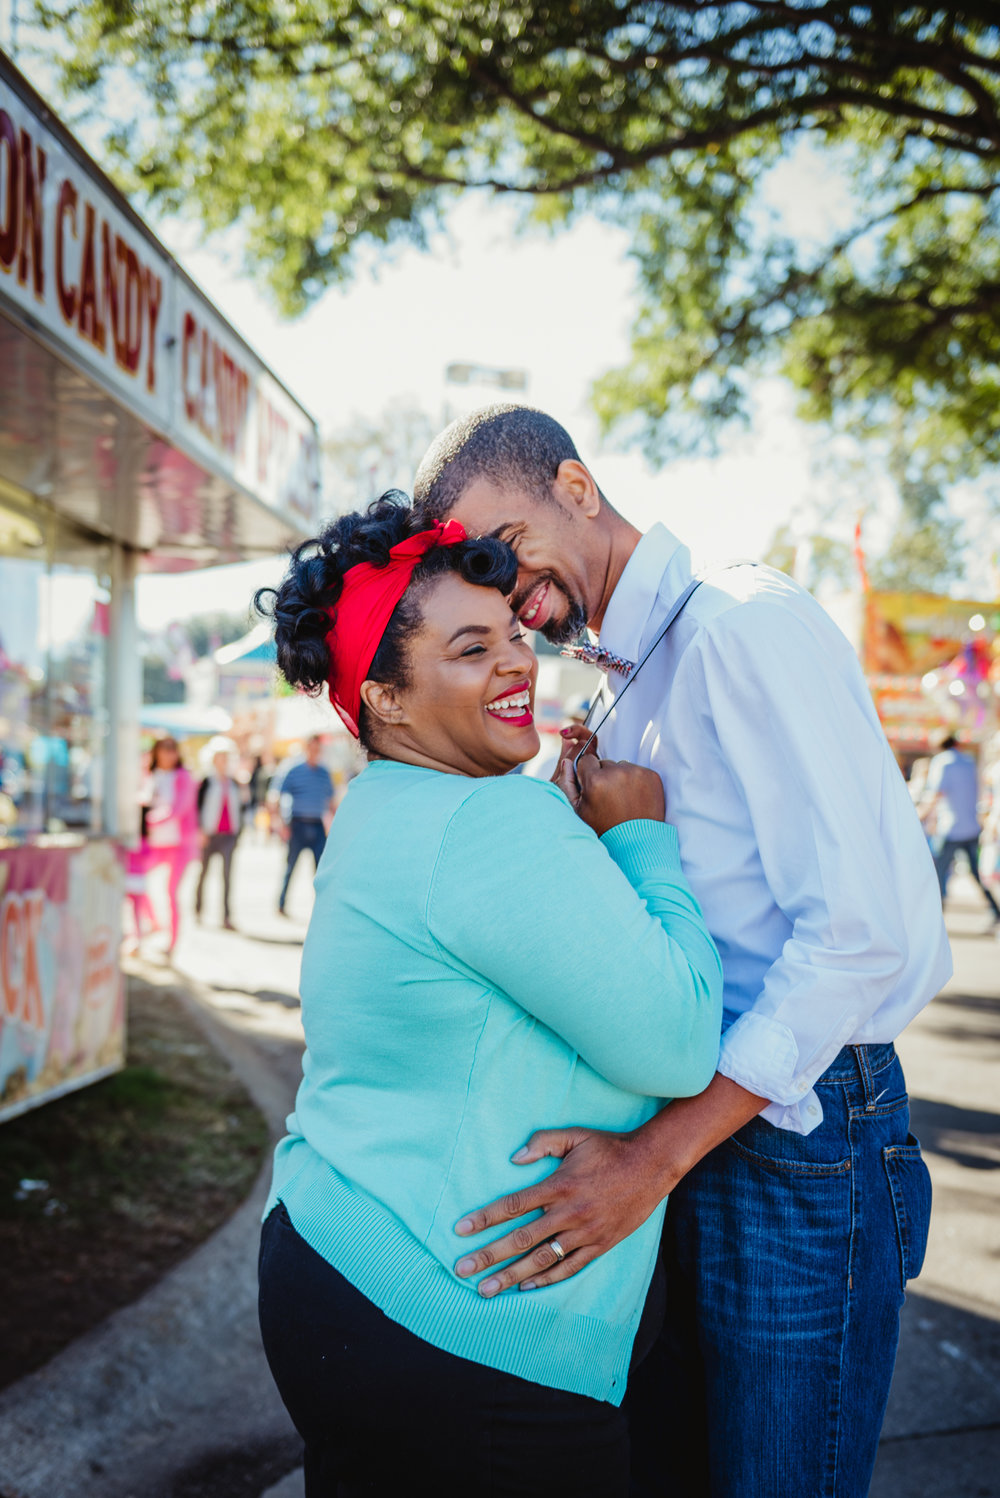 snuggling-and-laughing-at-the-NC-State-fair.jpg